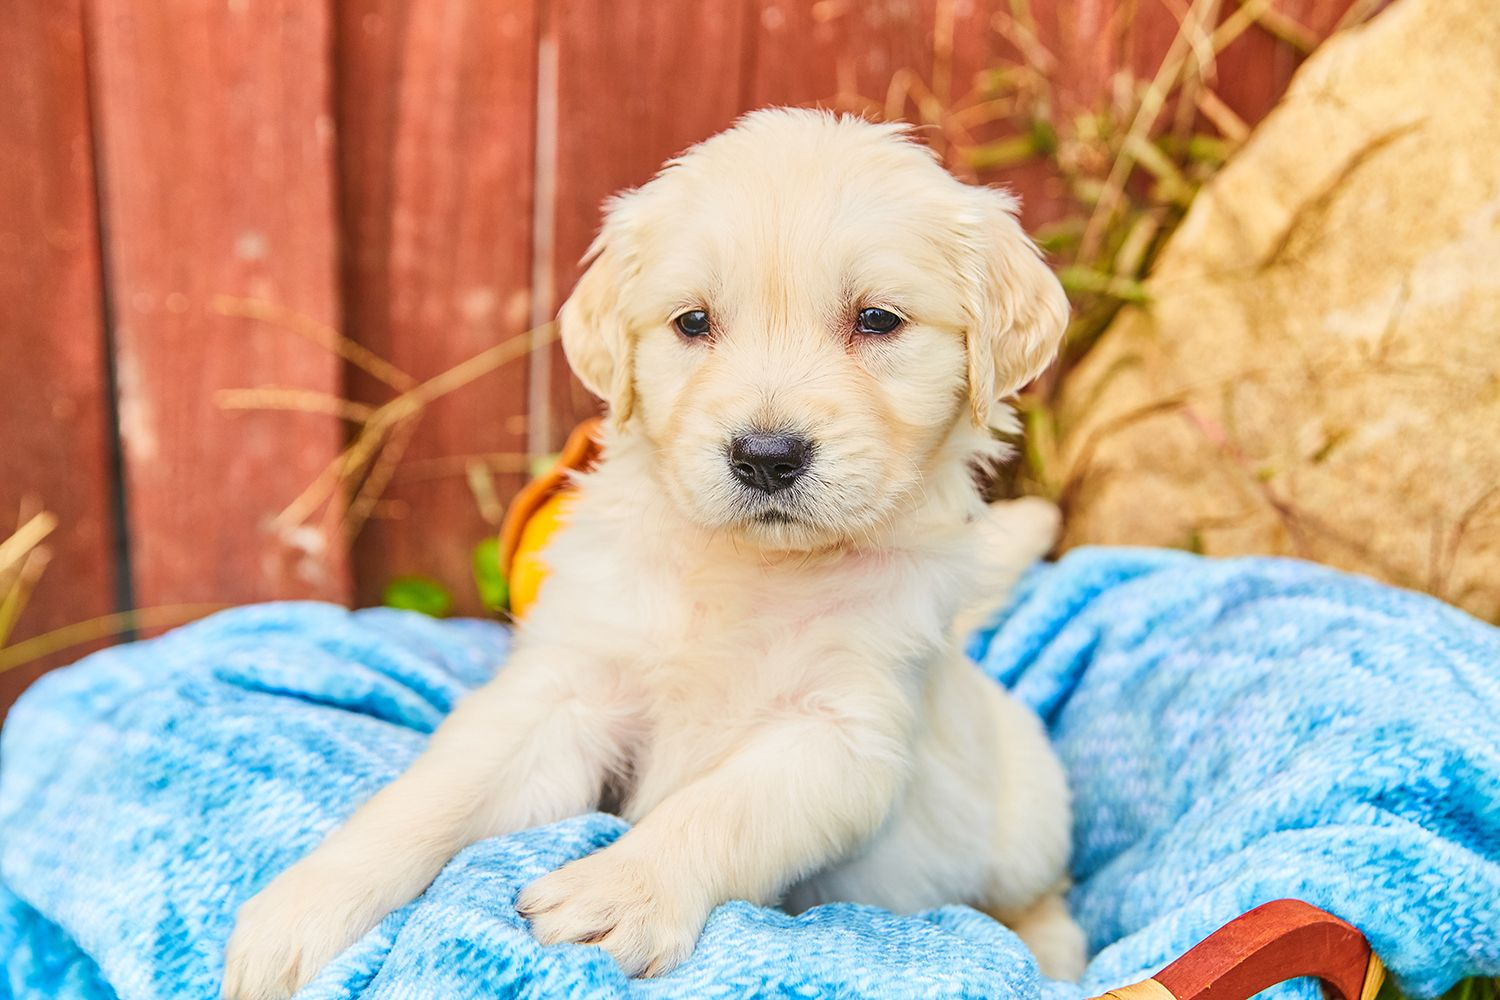 Golden Retrievers Have The Reputation Of Being Smart Easygoing Dogs That Are Good With Kids Interested In Adopting One Dog Person Golden Retriever Family Dogs